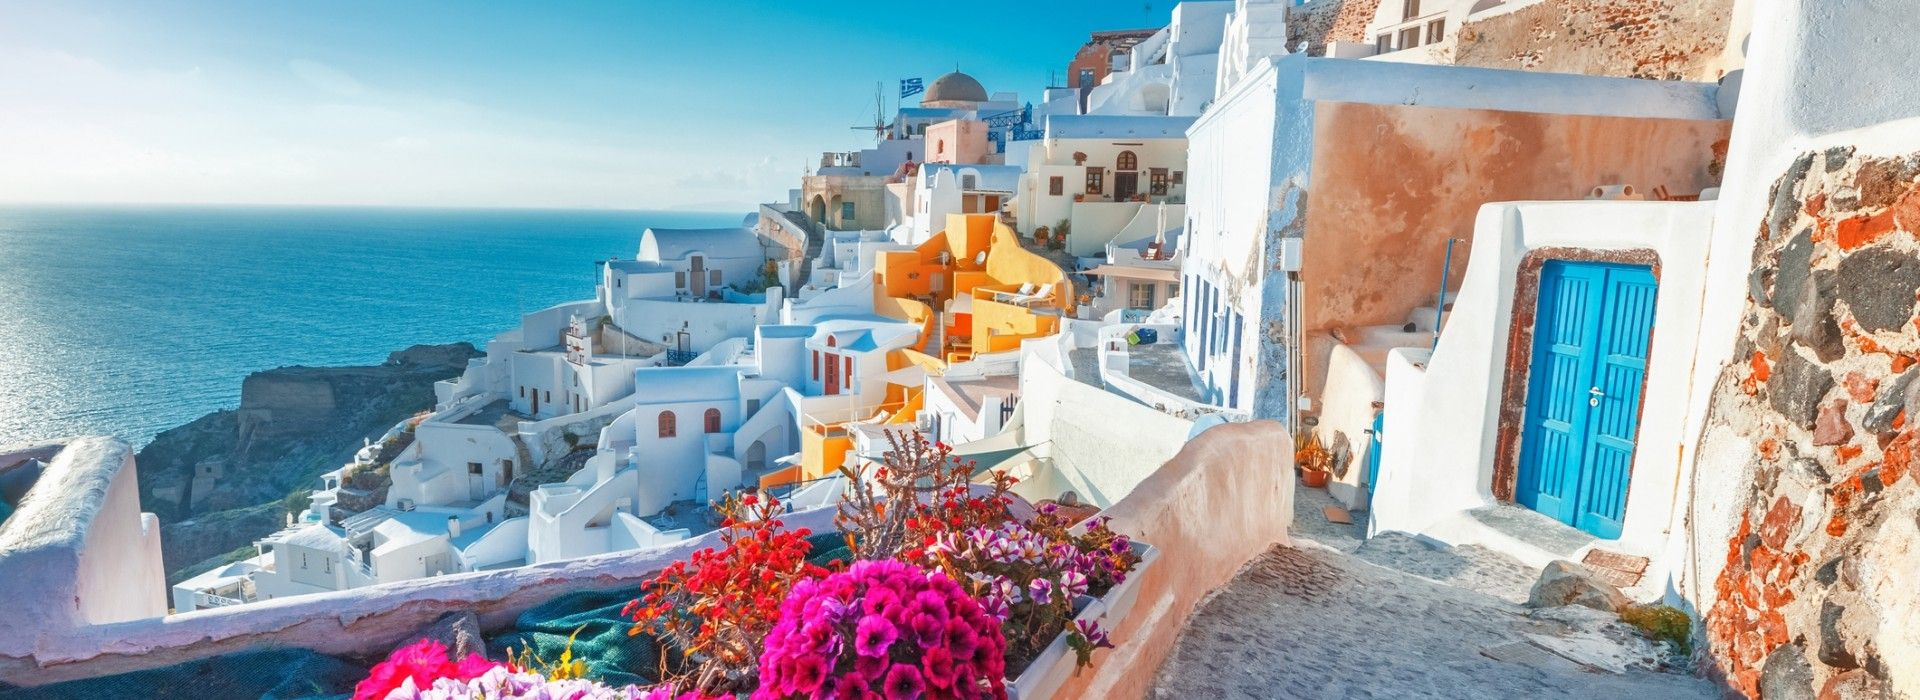 Shopping and markets Tours in Mediterranean